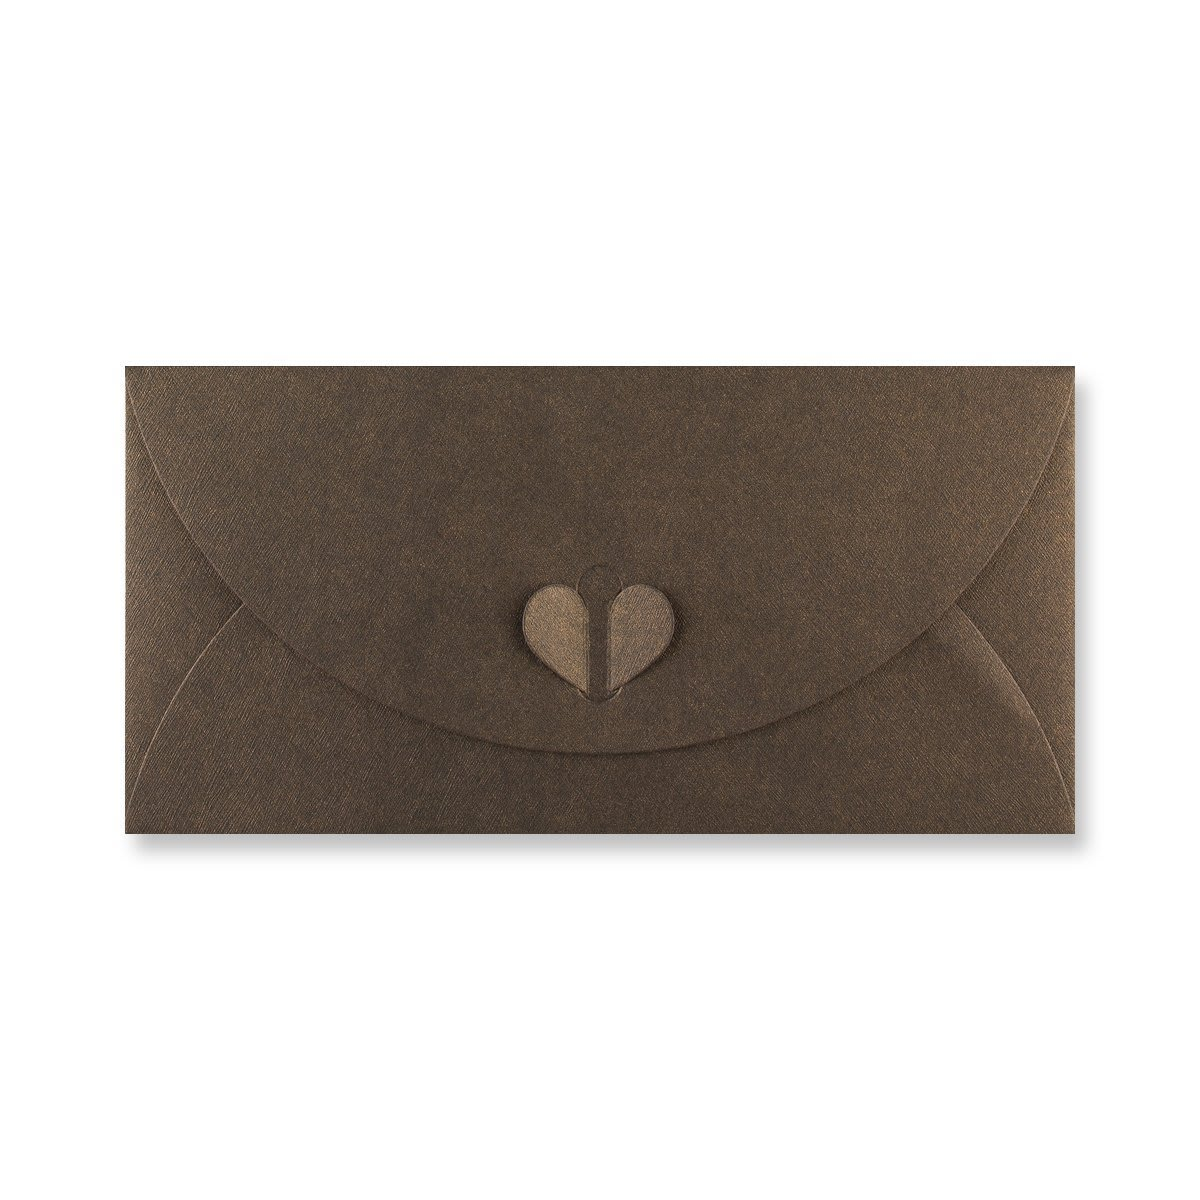 DL BRONZE BUTTERFLY ENVELOPES